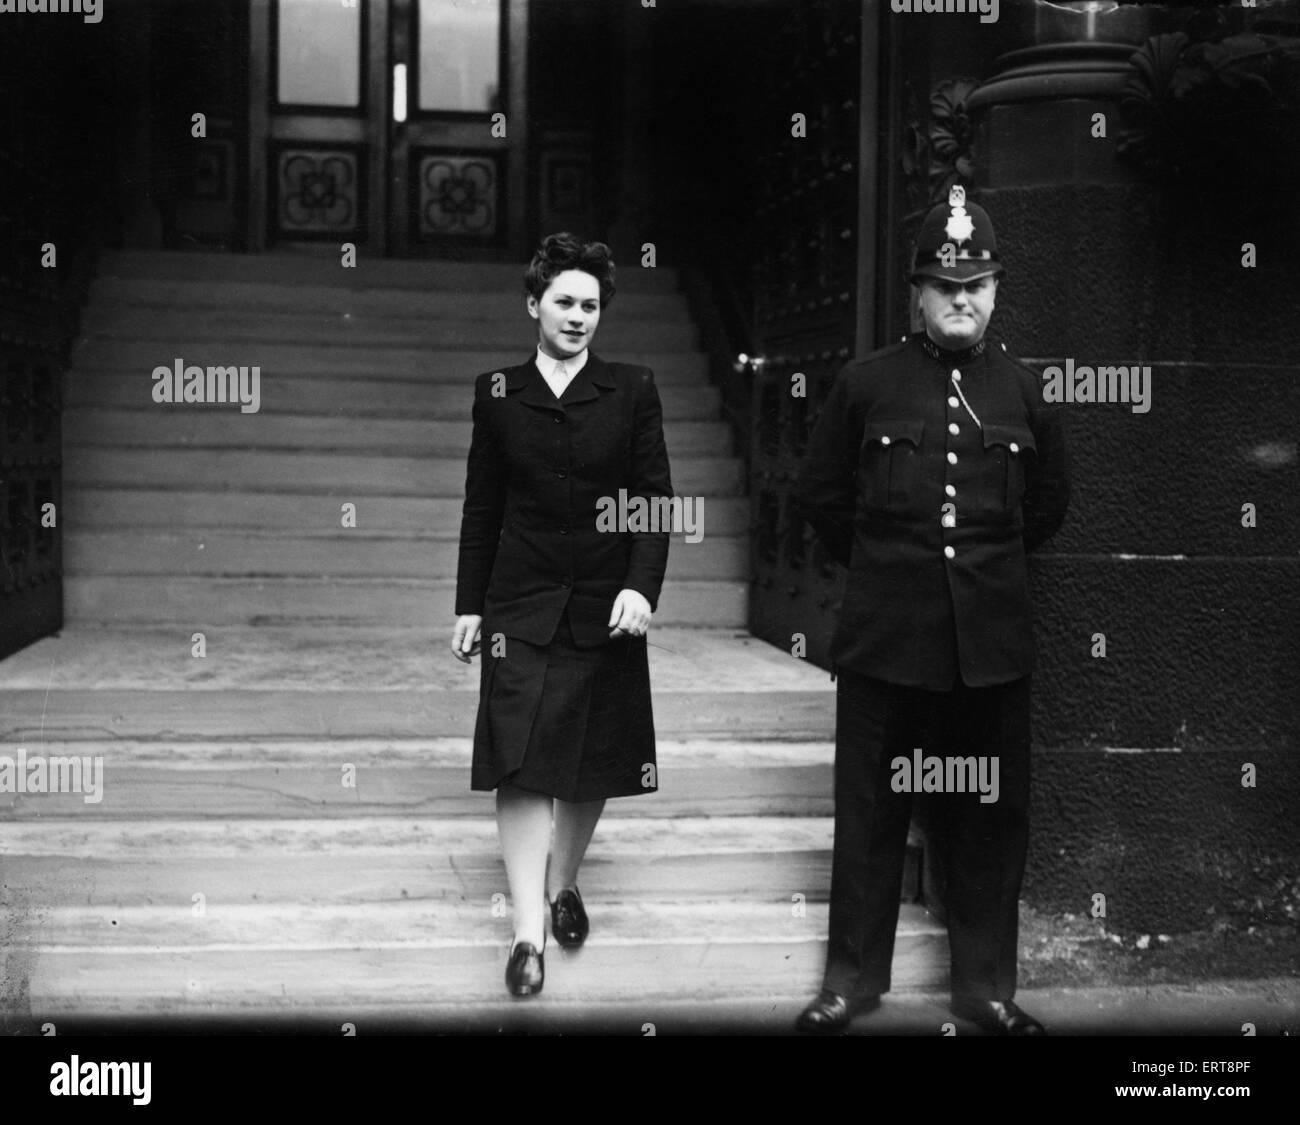 Miss Rose Heilbron barrister of law 30th April 1946 - Stock Image